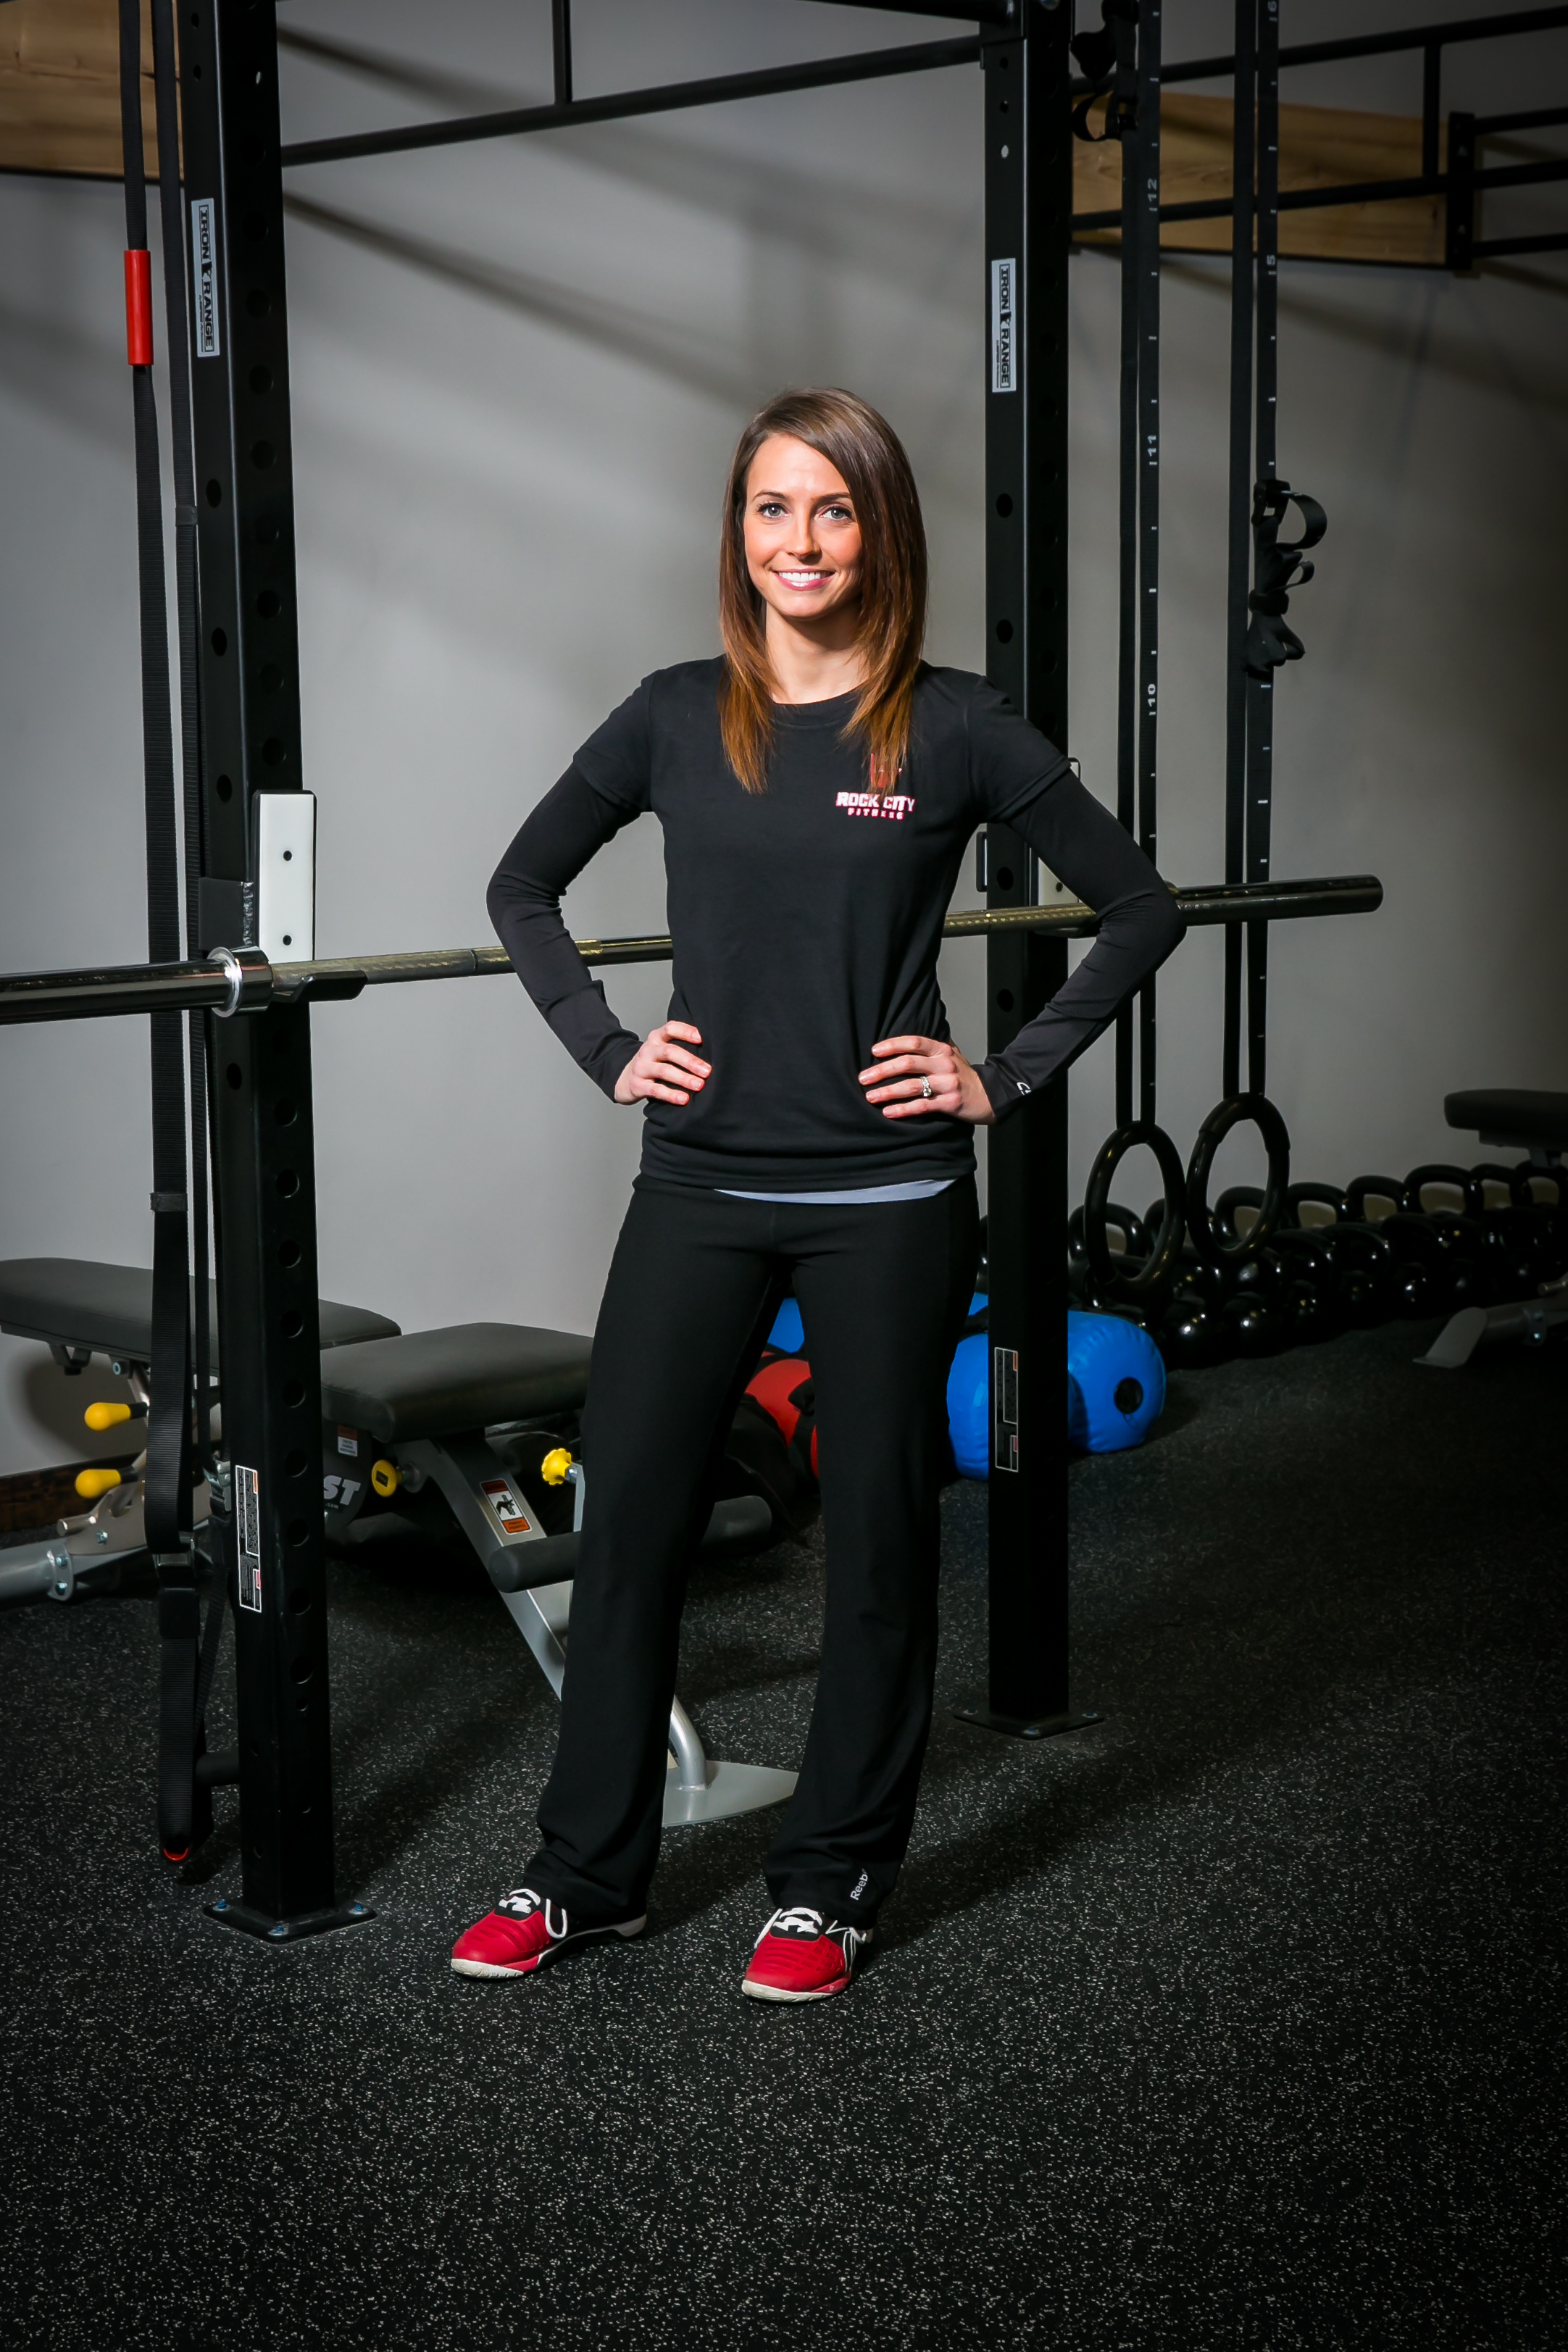 heather hesington personal trainer